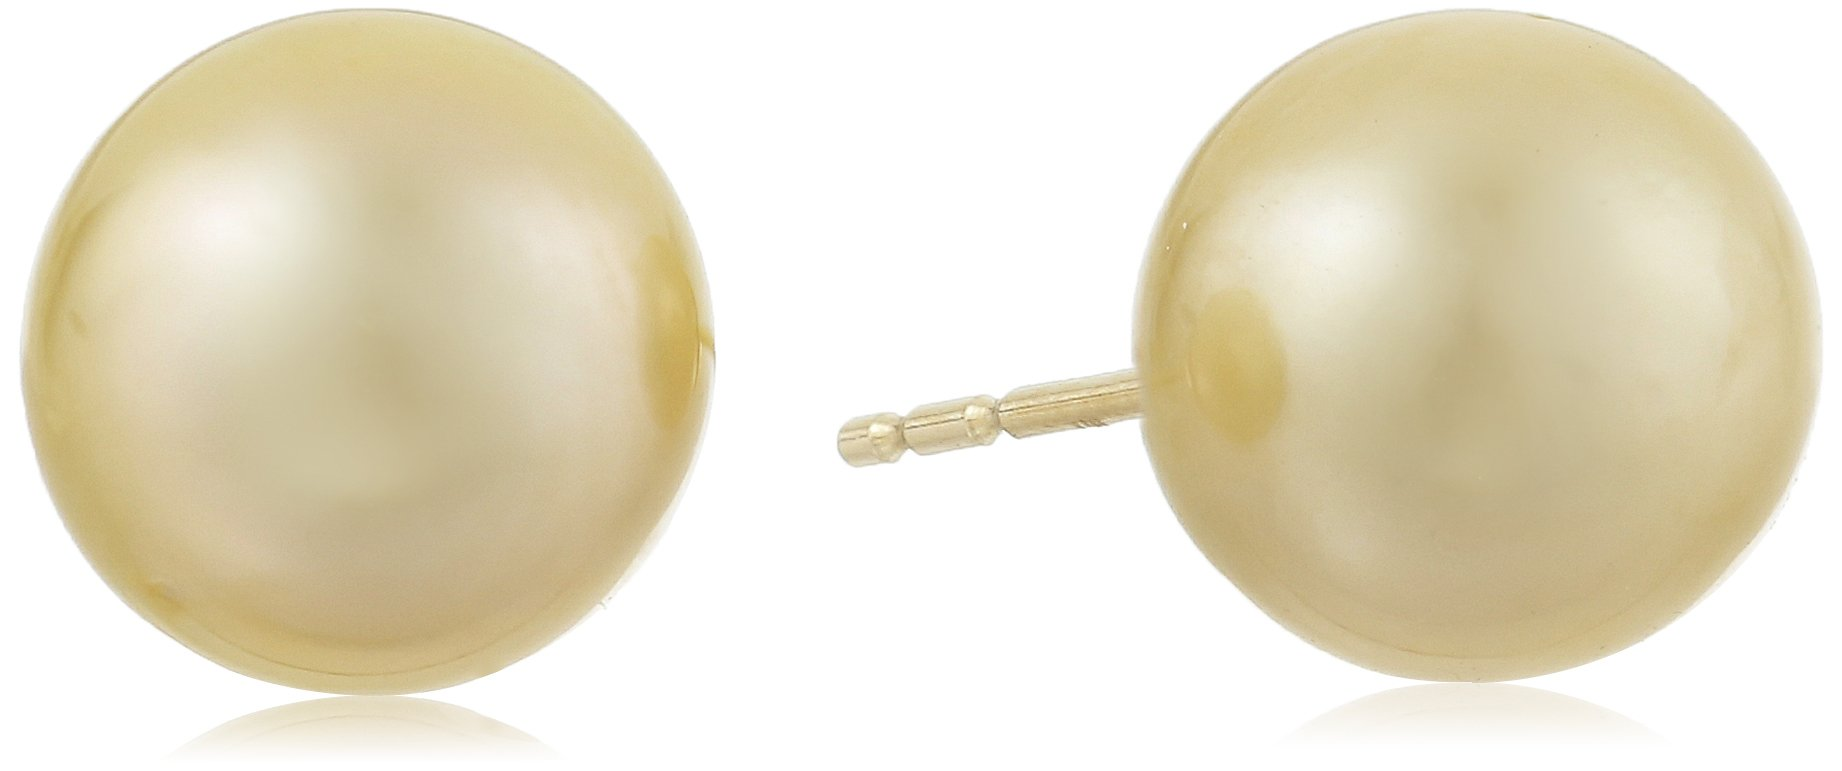 14k Yellow Gold AA Quality Golden South Sea Cultured Pearl 10x11mm Stud Earrings by Amazon Collection